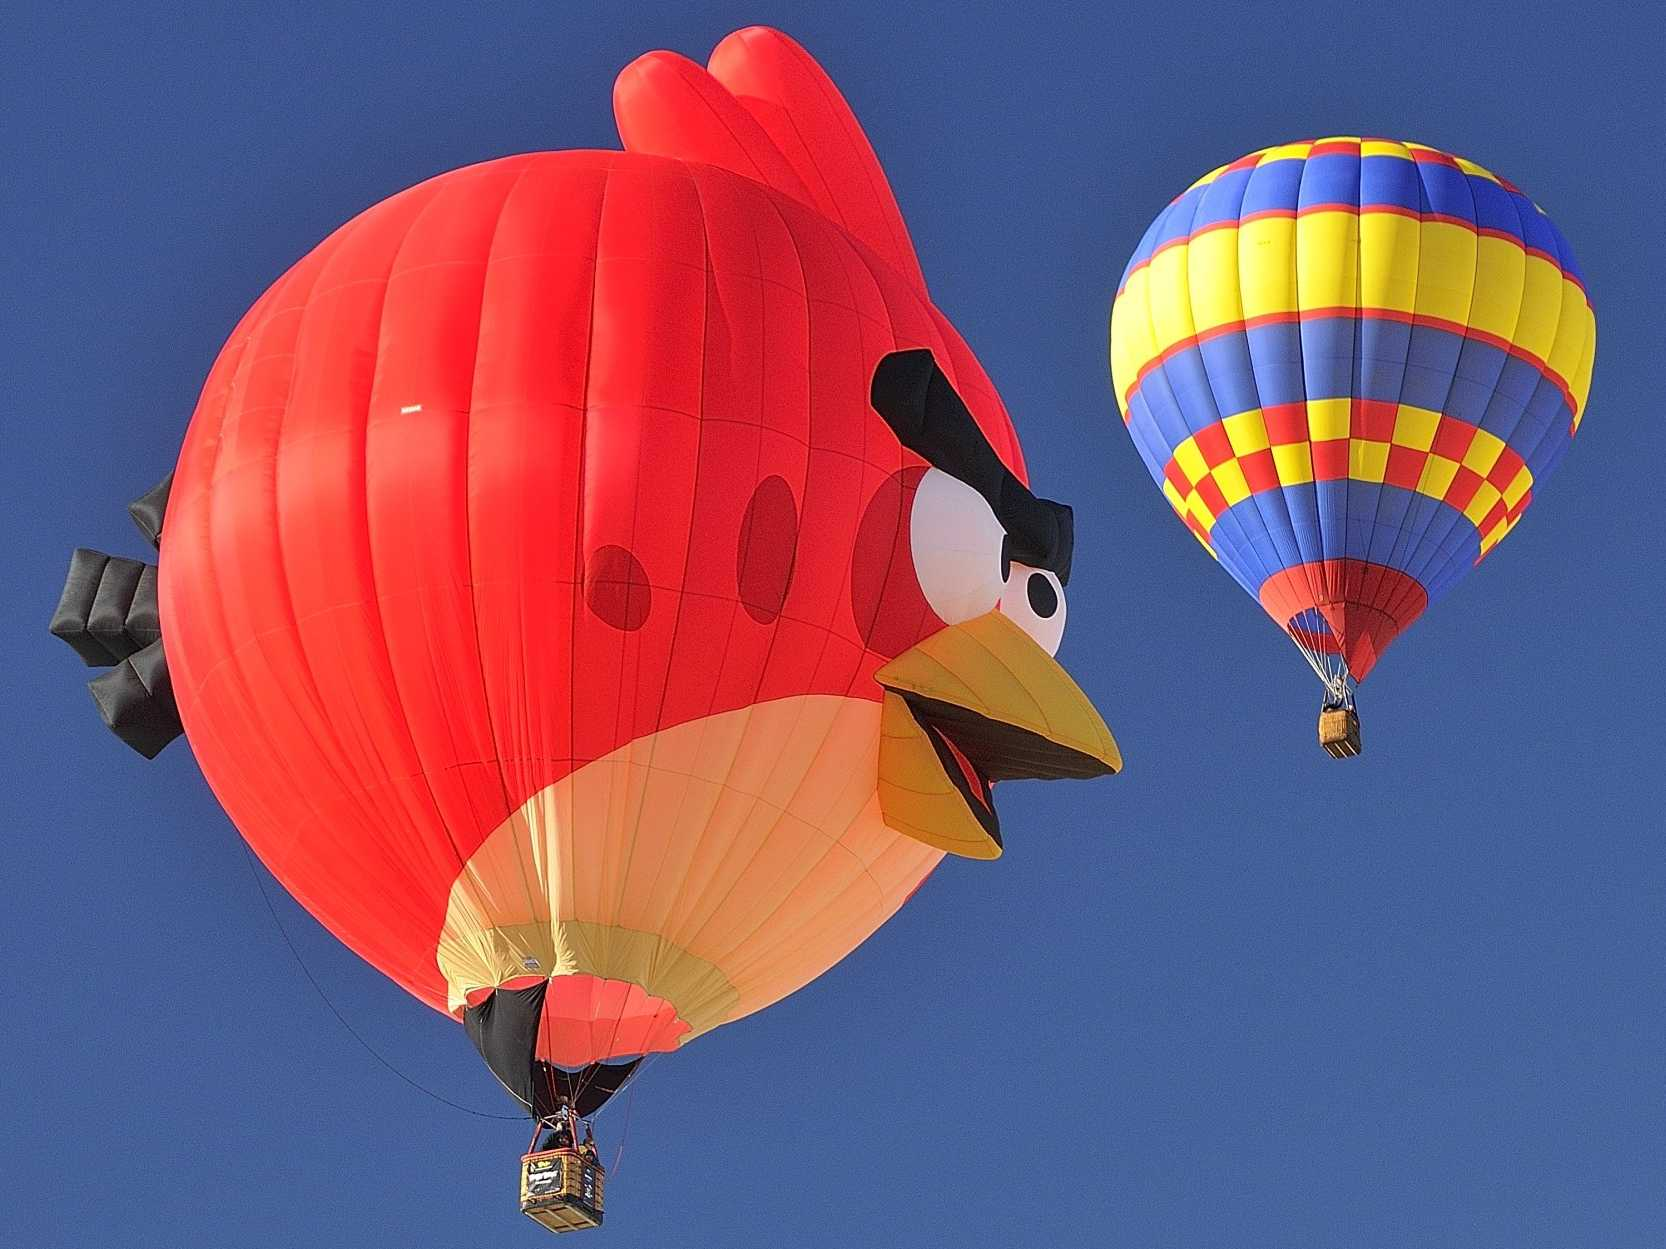 Angry Bird Space Wallpaper 3d The Most Stunning Photos Of Hot Air Balloon Festivals From